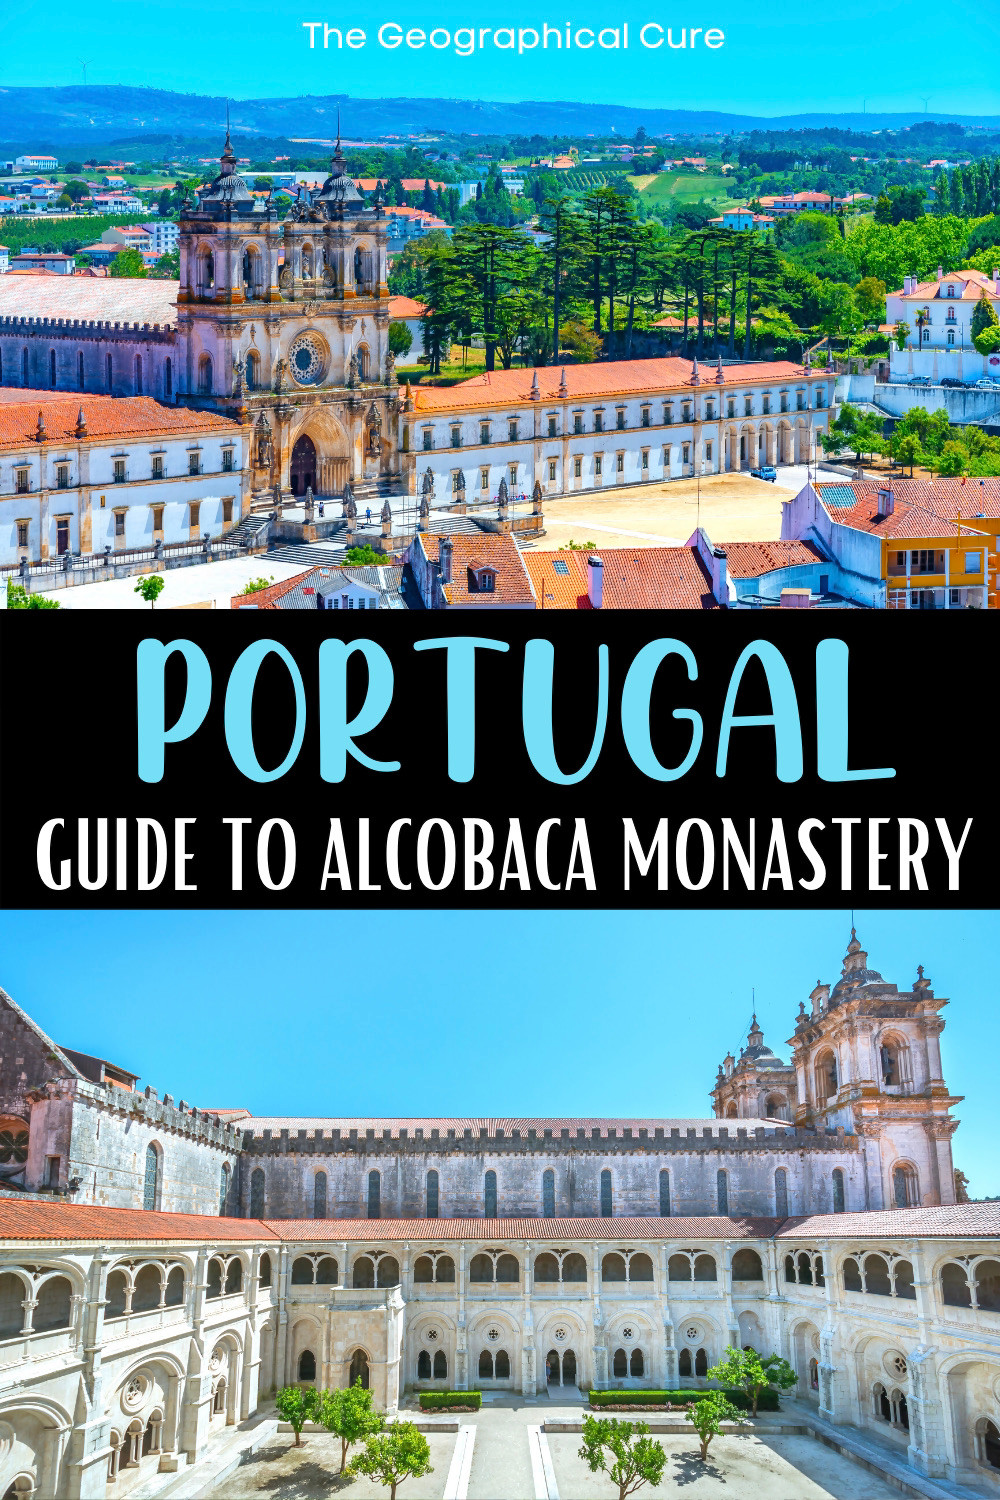 guide to Alcobaca Monastery, a beautiful must see landmark in Portugal